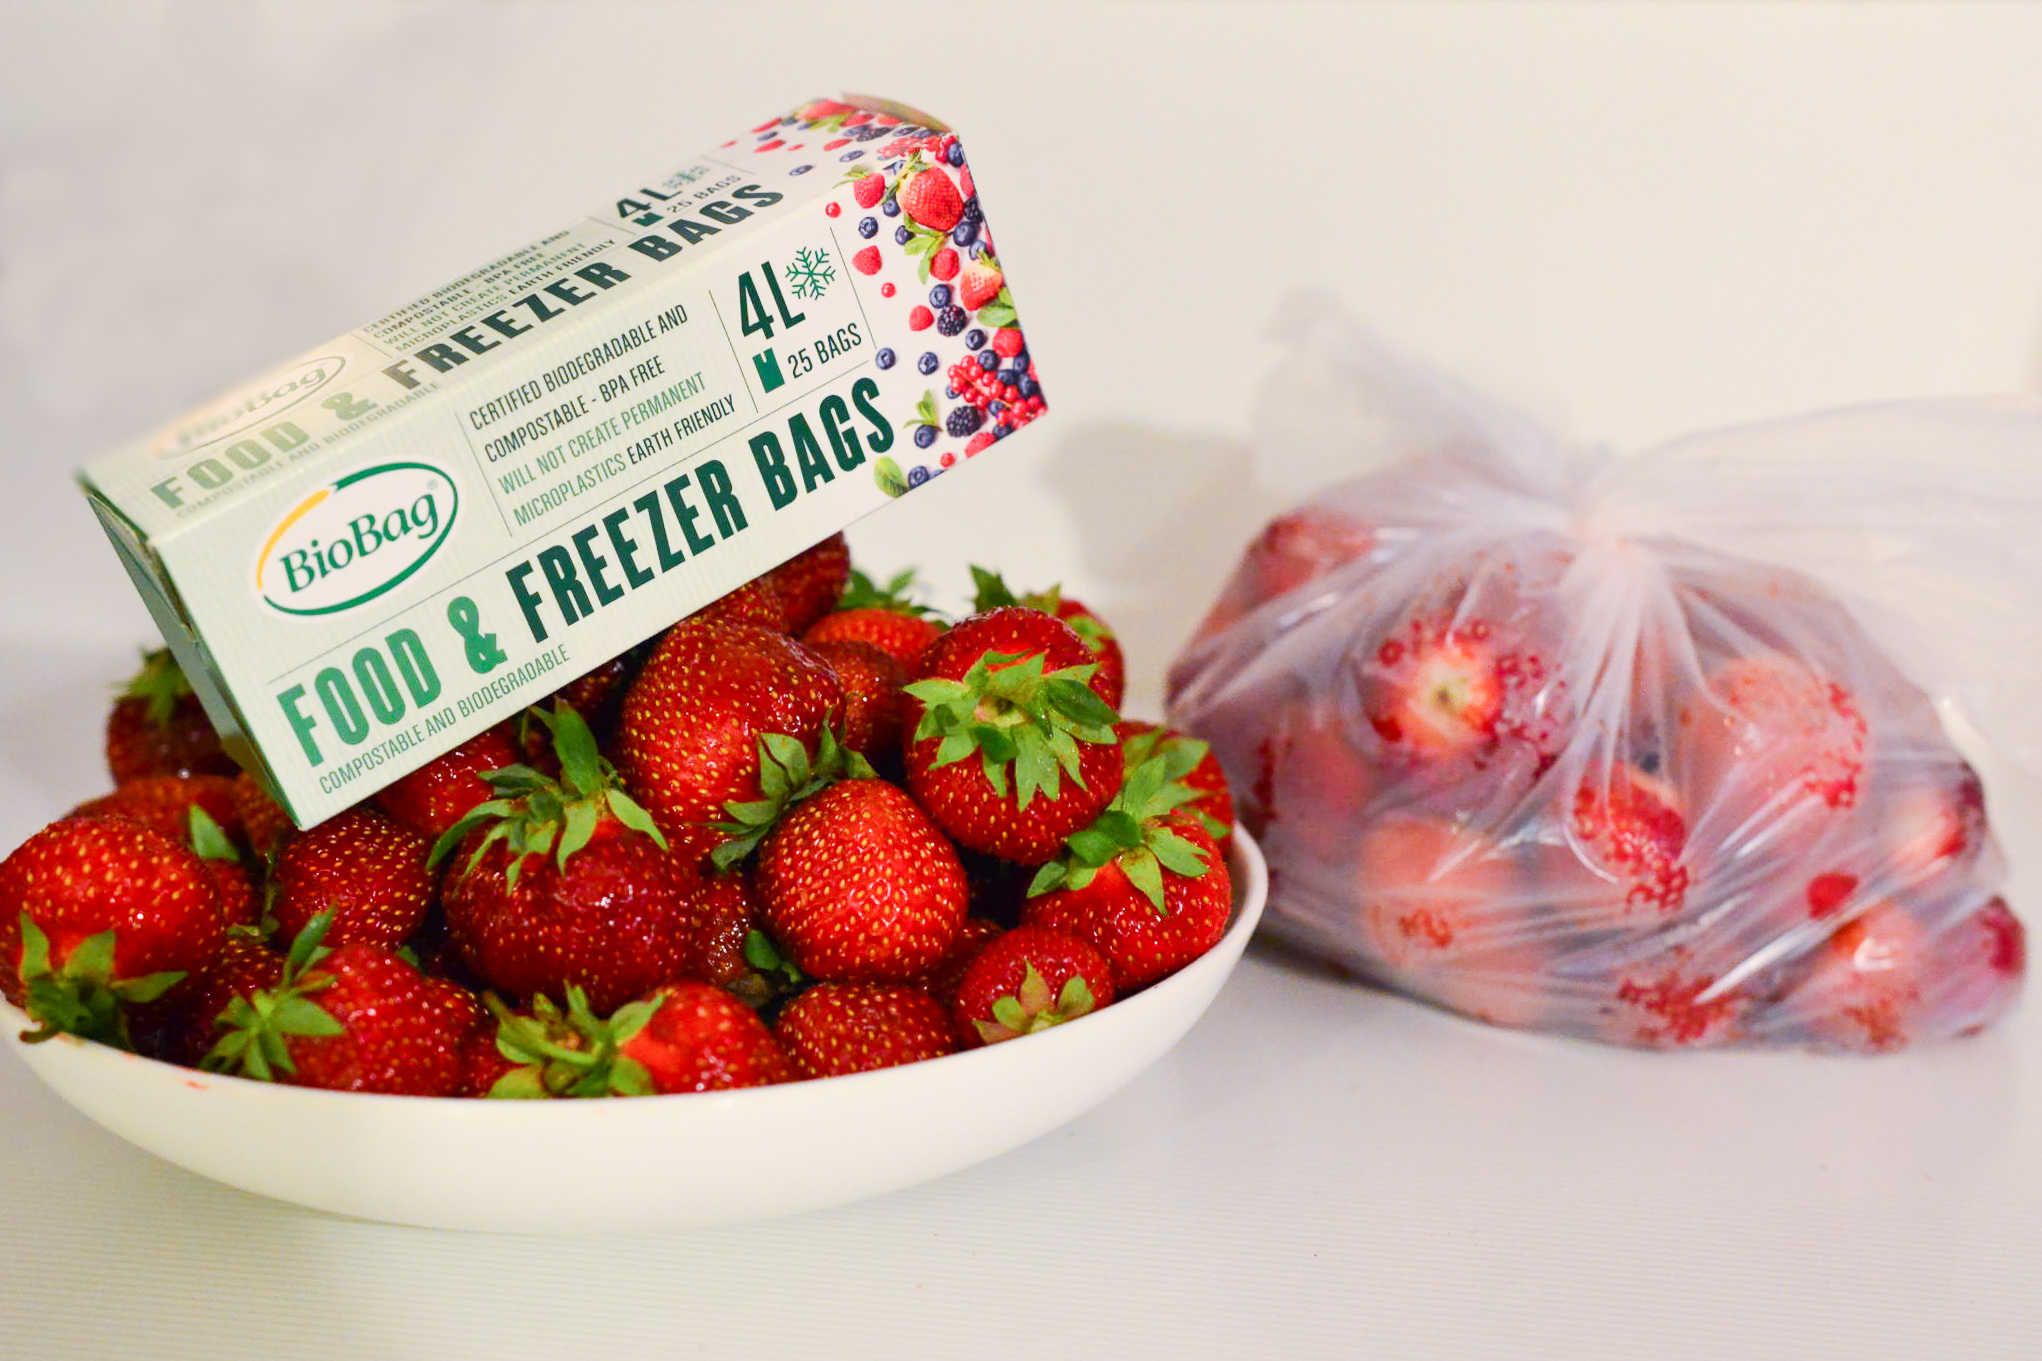 Compostable & Biodegradabl Food Freezer Strawberries